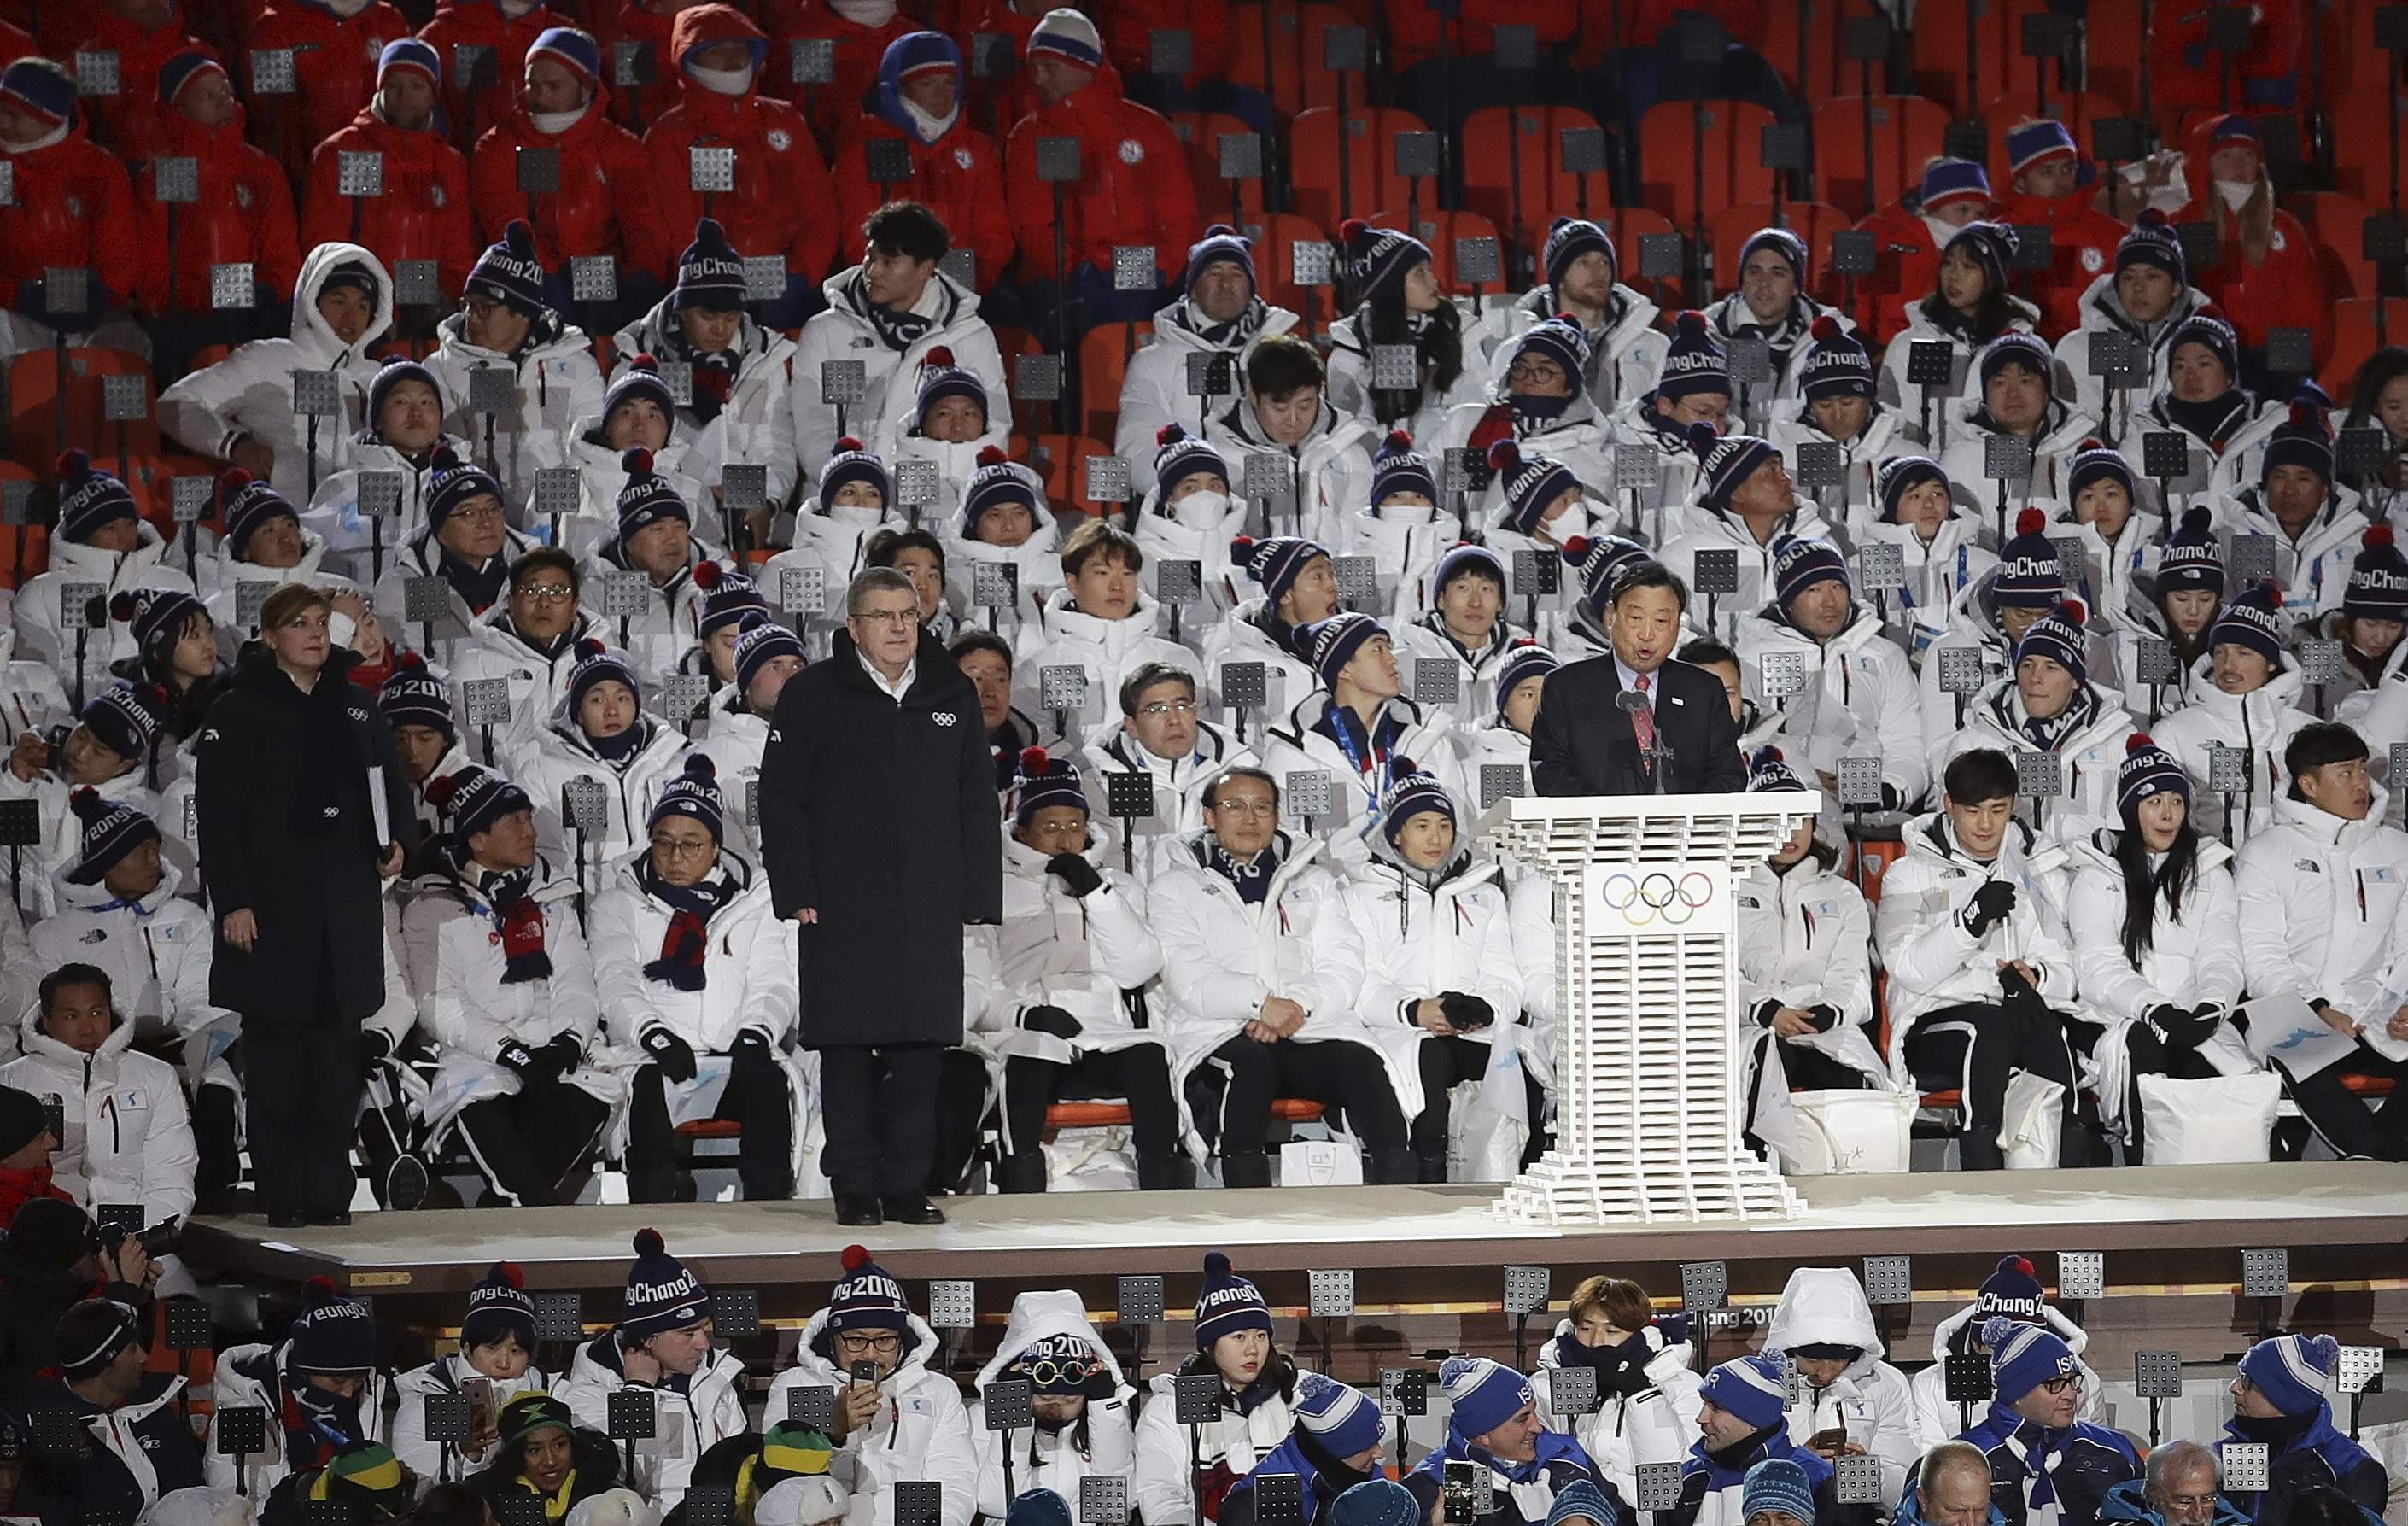 Lee Hee-beom, president & CEO of the Pyeongchang Organizing Committee speaks as International Olympic Committee President Thomas Bach stands at left during the opening ceremony of the 2018 Winter Olympics in Pyeongchang, South Korea, Friday, Feb. 9, 2018. (AP Photo/Michael Sohn)